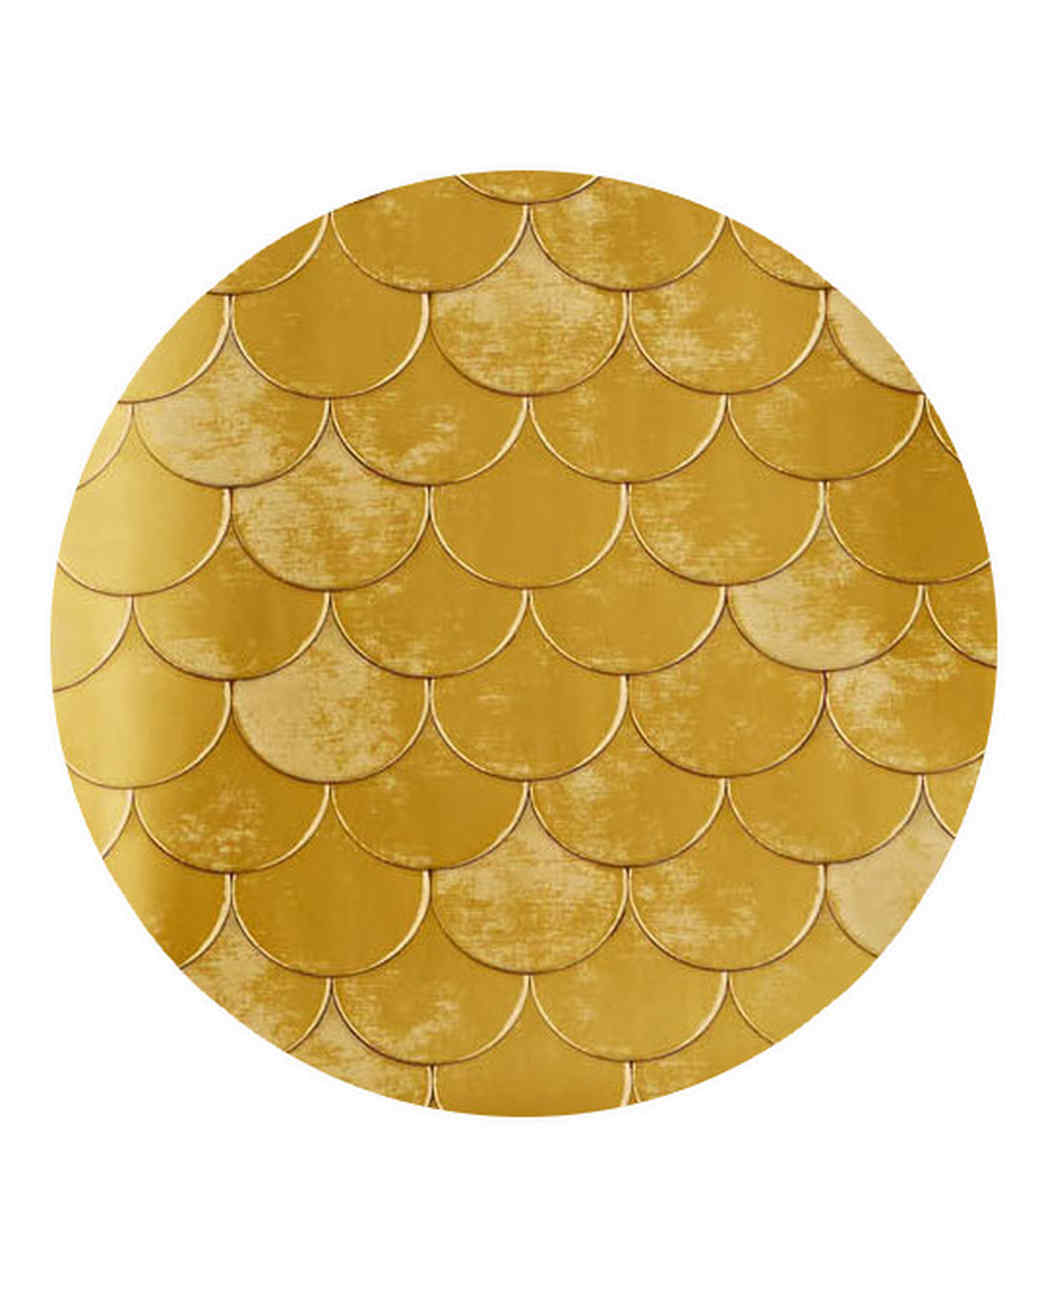 Genevieve Gorder For Tempaper Collection Wallpaper